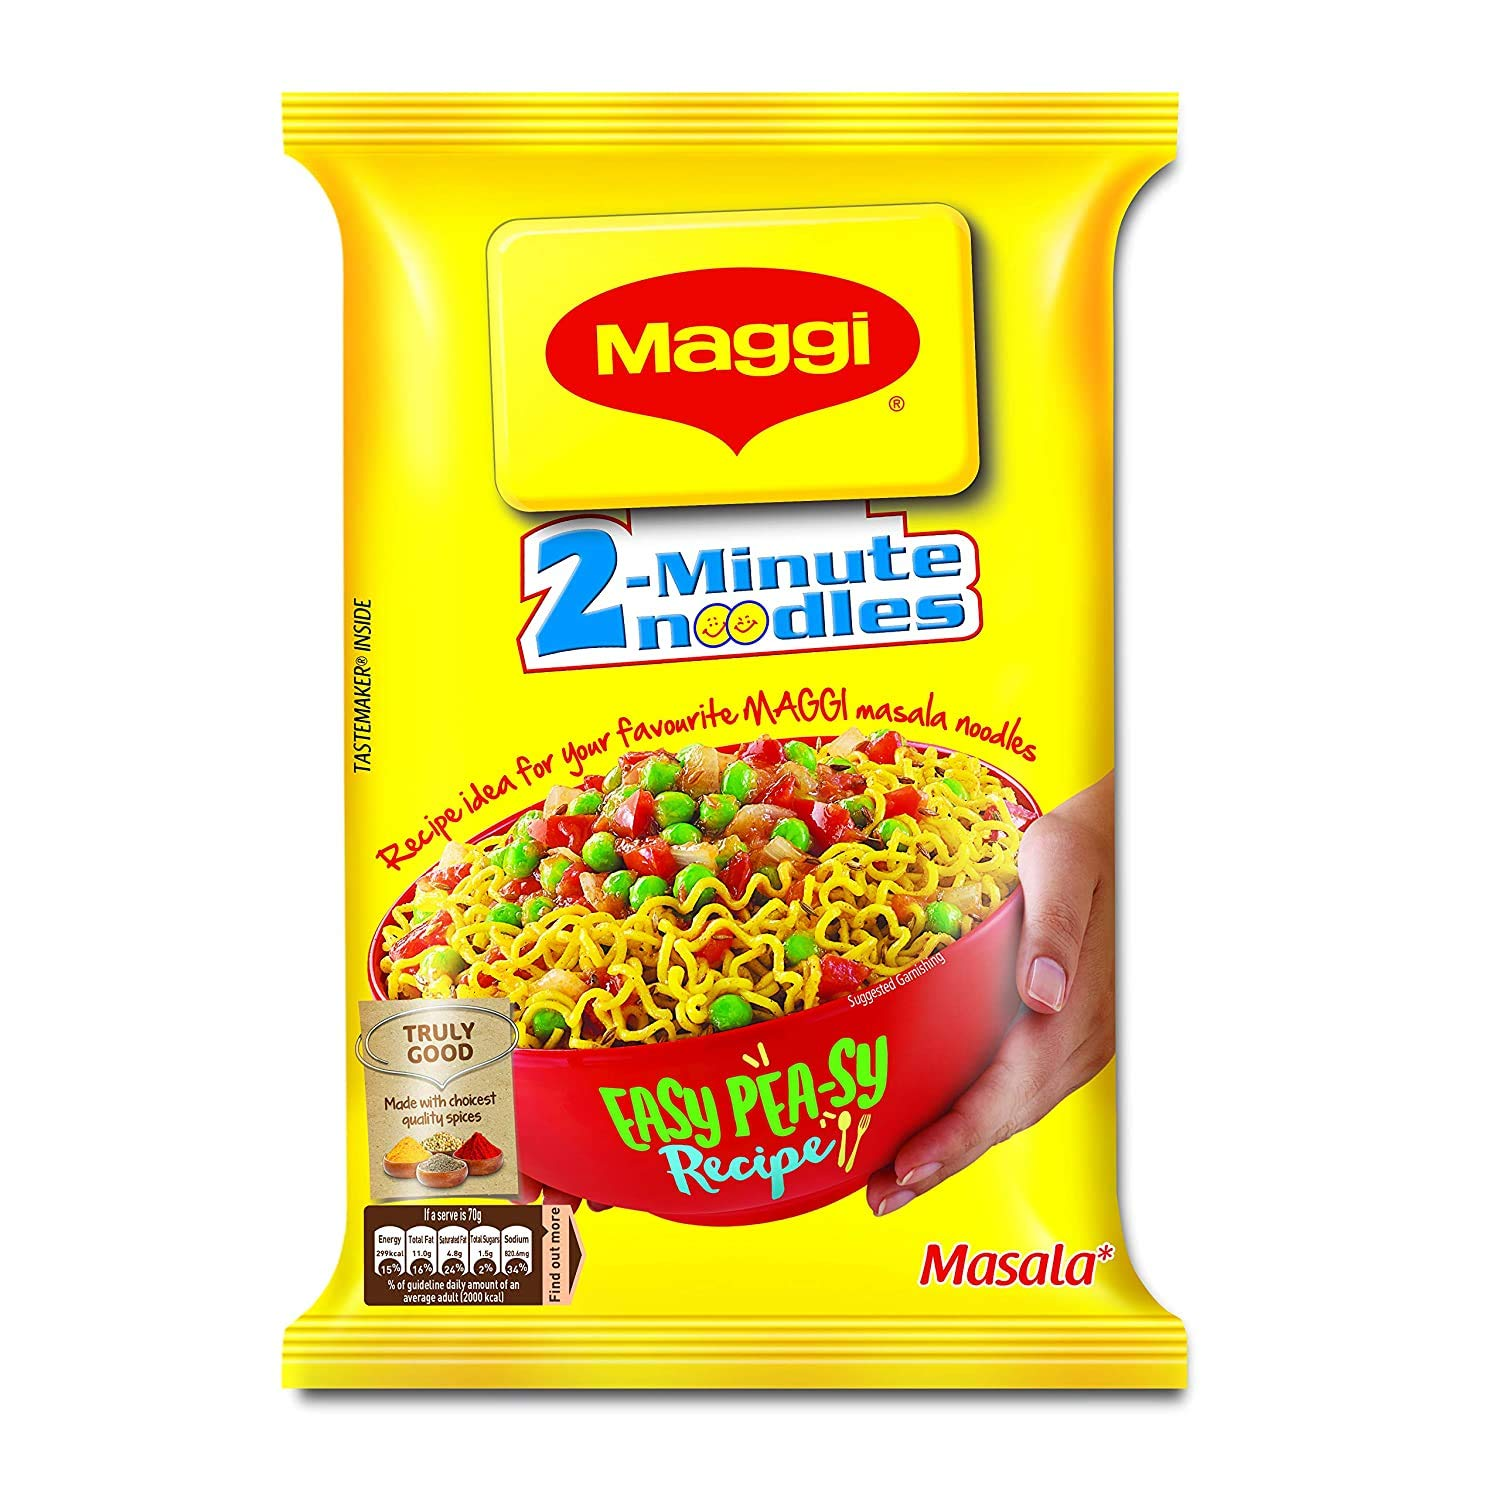 Maggi Masala 2-Minute Noodles India Snack - 5 Pack